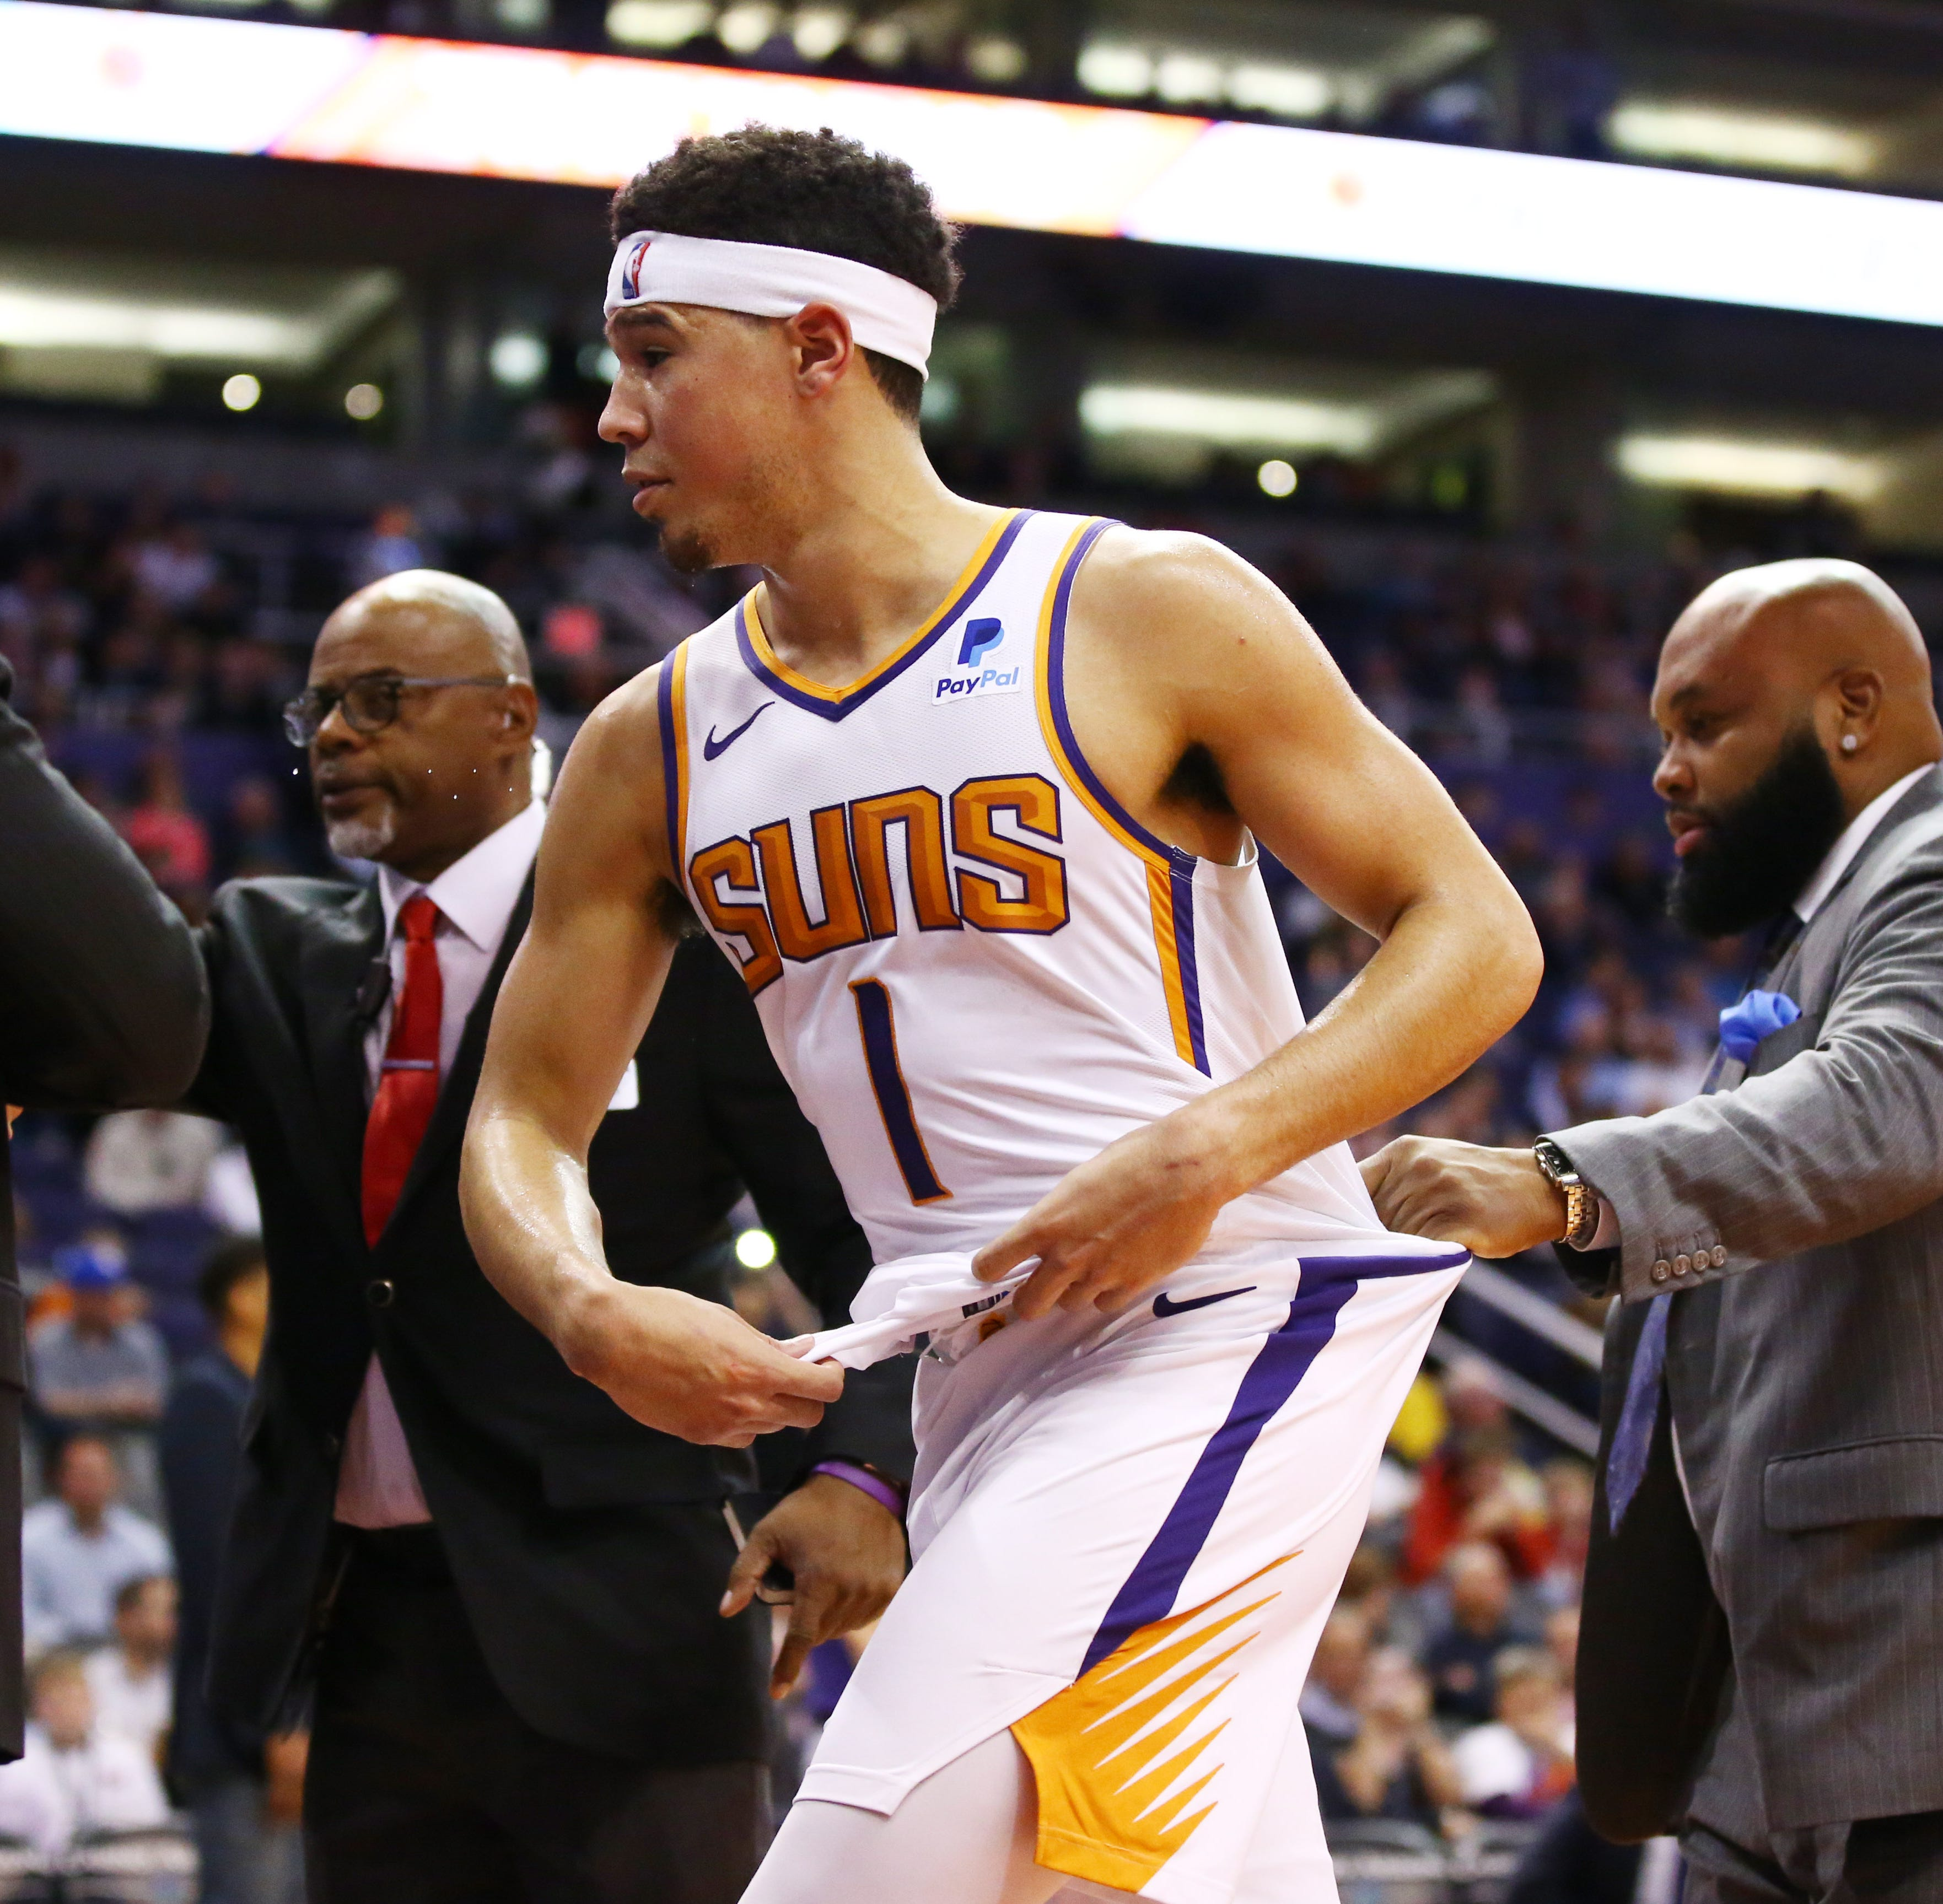 Suns' Devin Booker loses control, tries to confront Timberwolves' Gorgui Dieng in tunnel